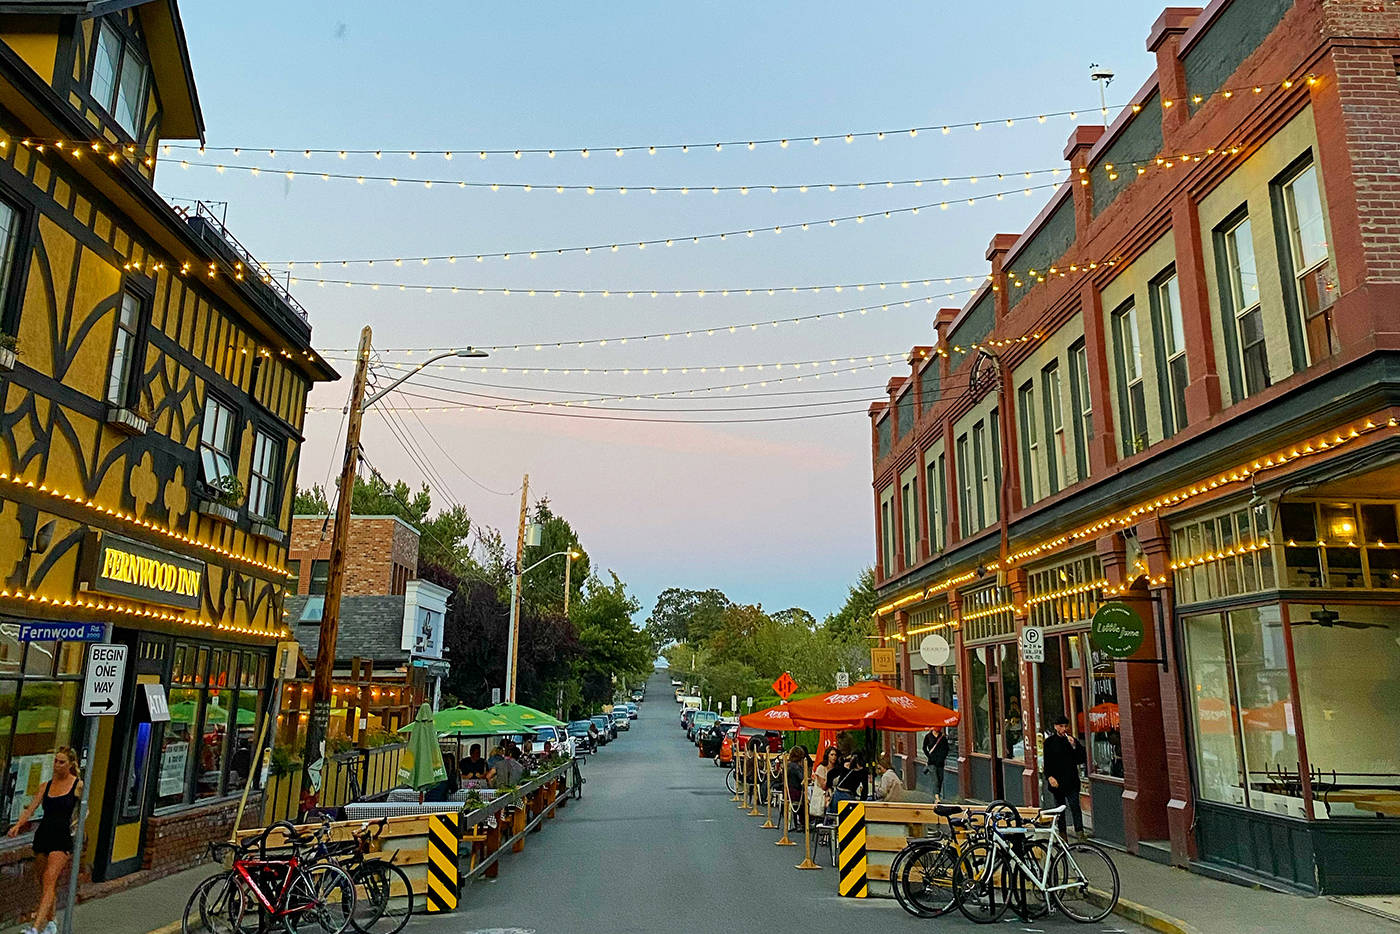 Chambers of commerce from across B.C. have endorsed a plan to tackle key social and economic factors impacting cities, which they say will also support businesses attempting to recover from the pandemic. (Photo courtesy of Build Back Victoria)